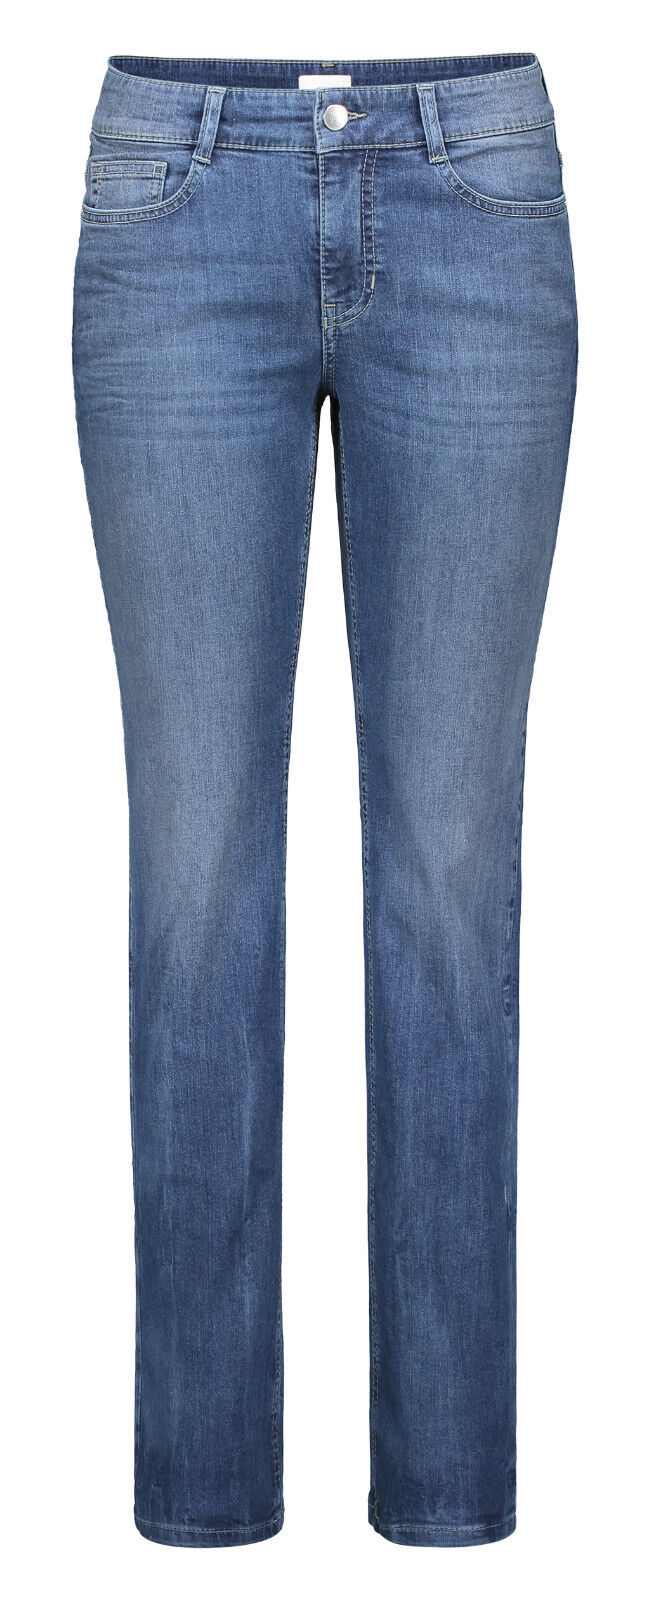 MAC Damen Jeans Angela 5240 NEU authentic mid Blau D640